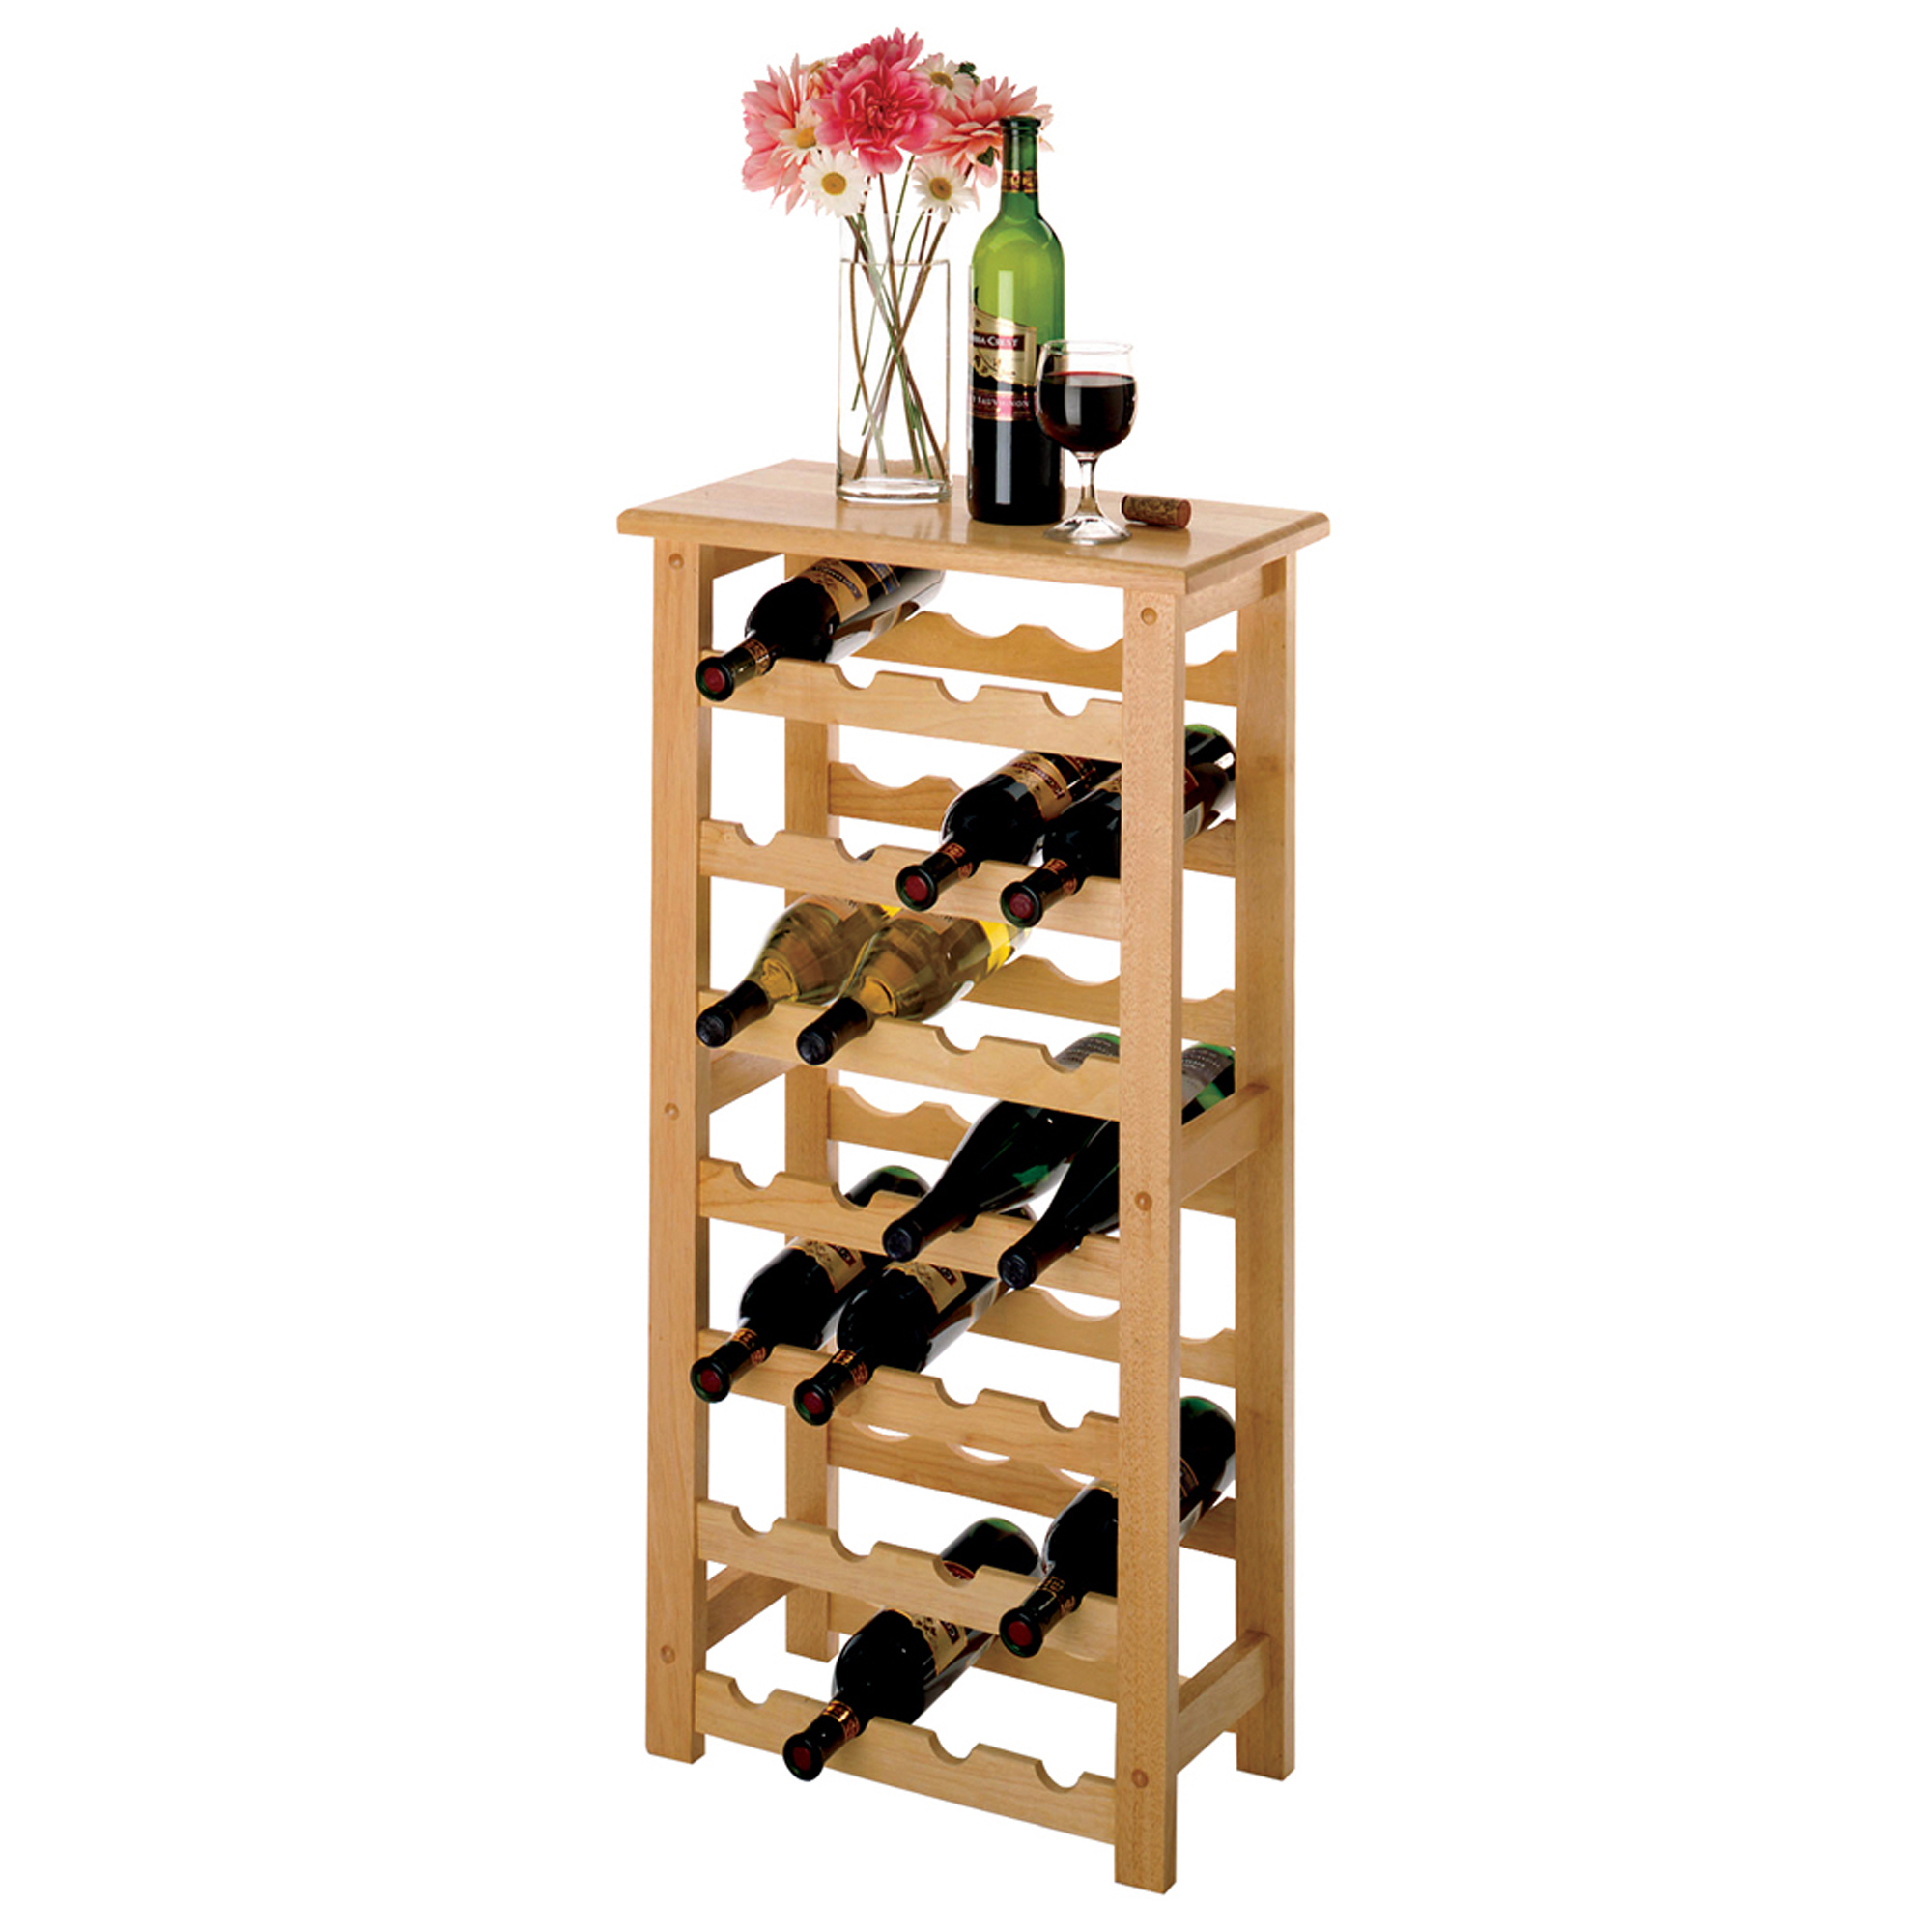 Winsome Wood Napa 28-Bottle Compact Sized Wine Rack, Natural Finish by Winsome Trading Inc